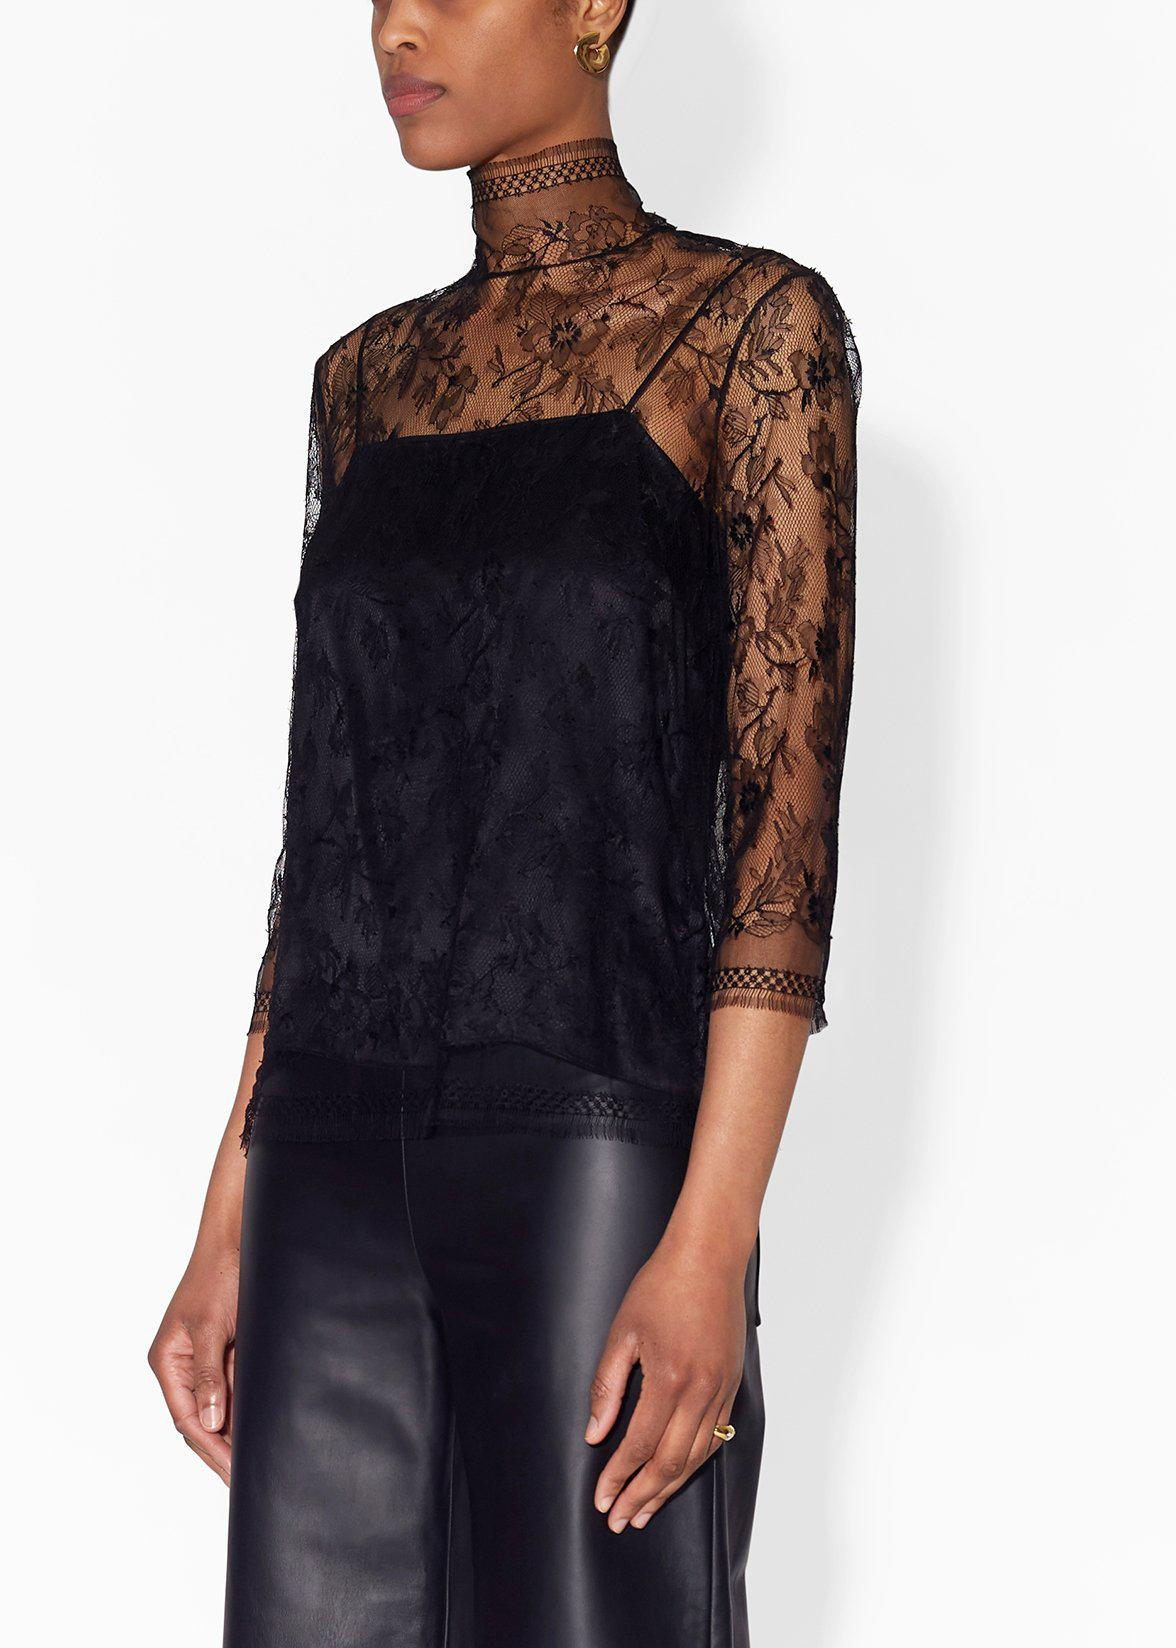 TURTLENECK IN CHANTILLY LACE